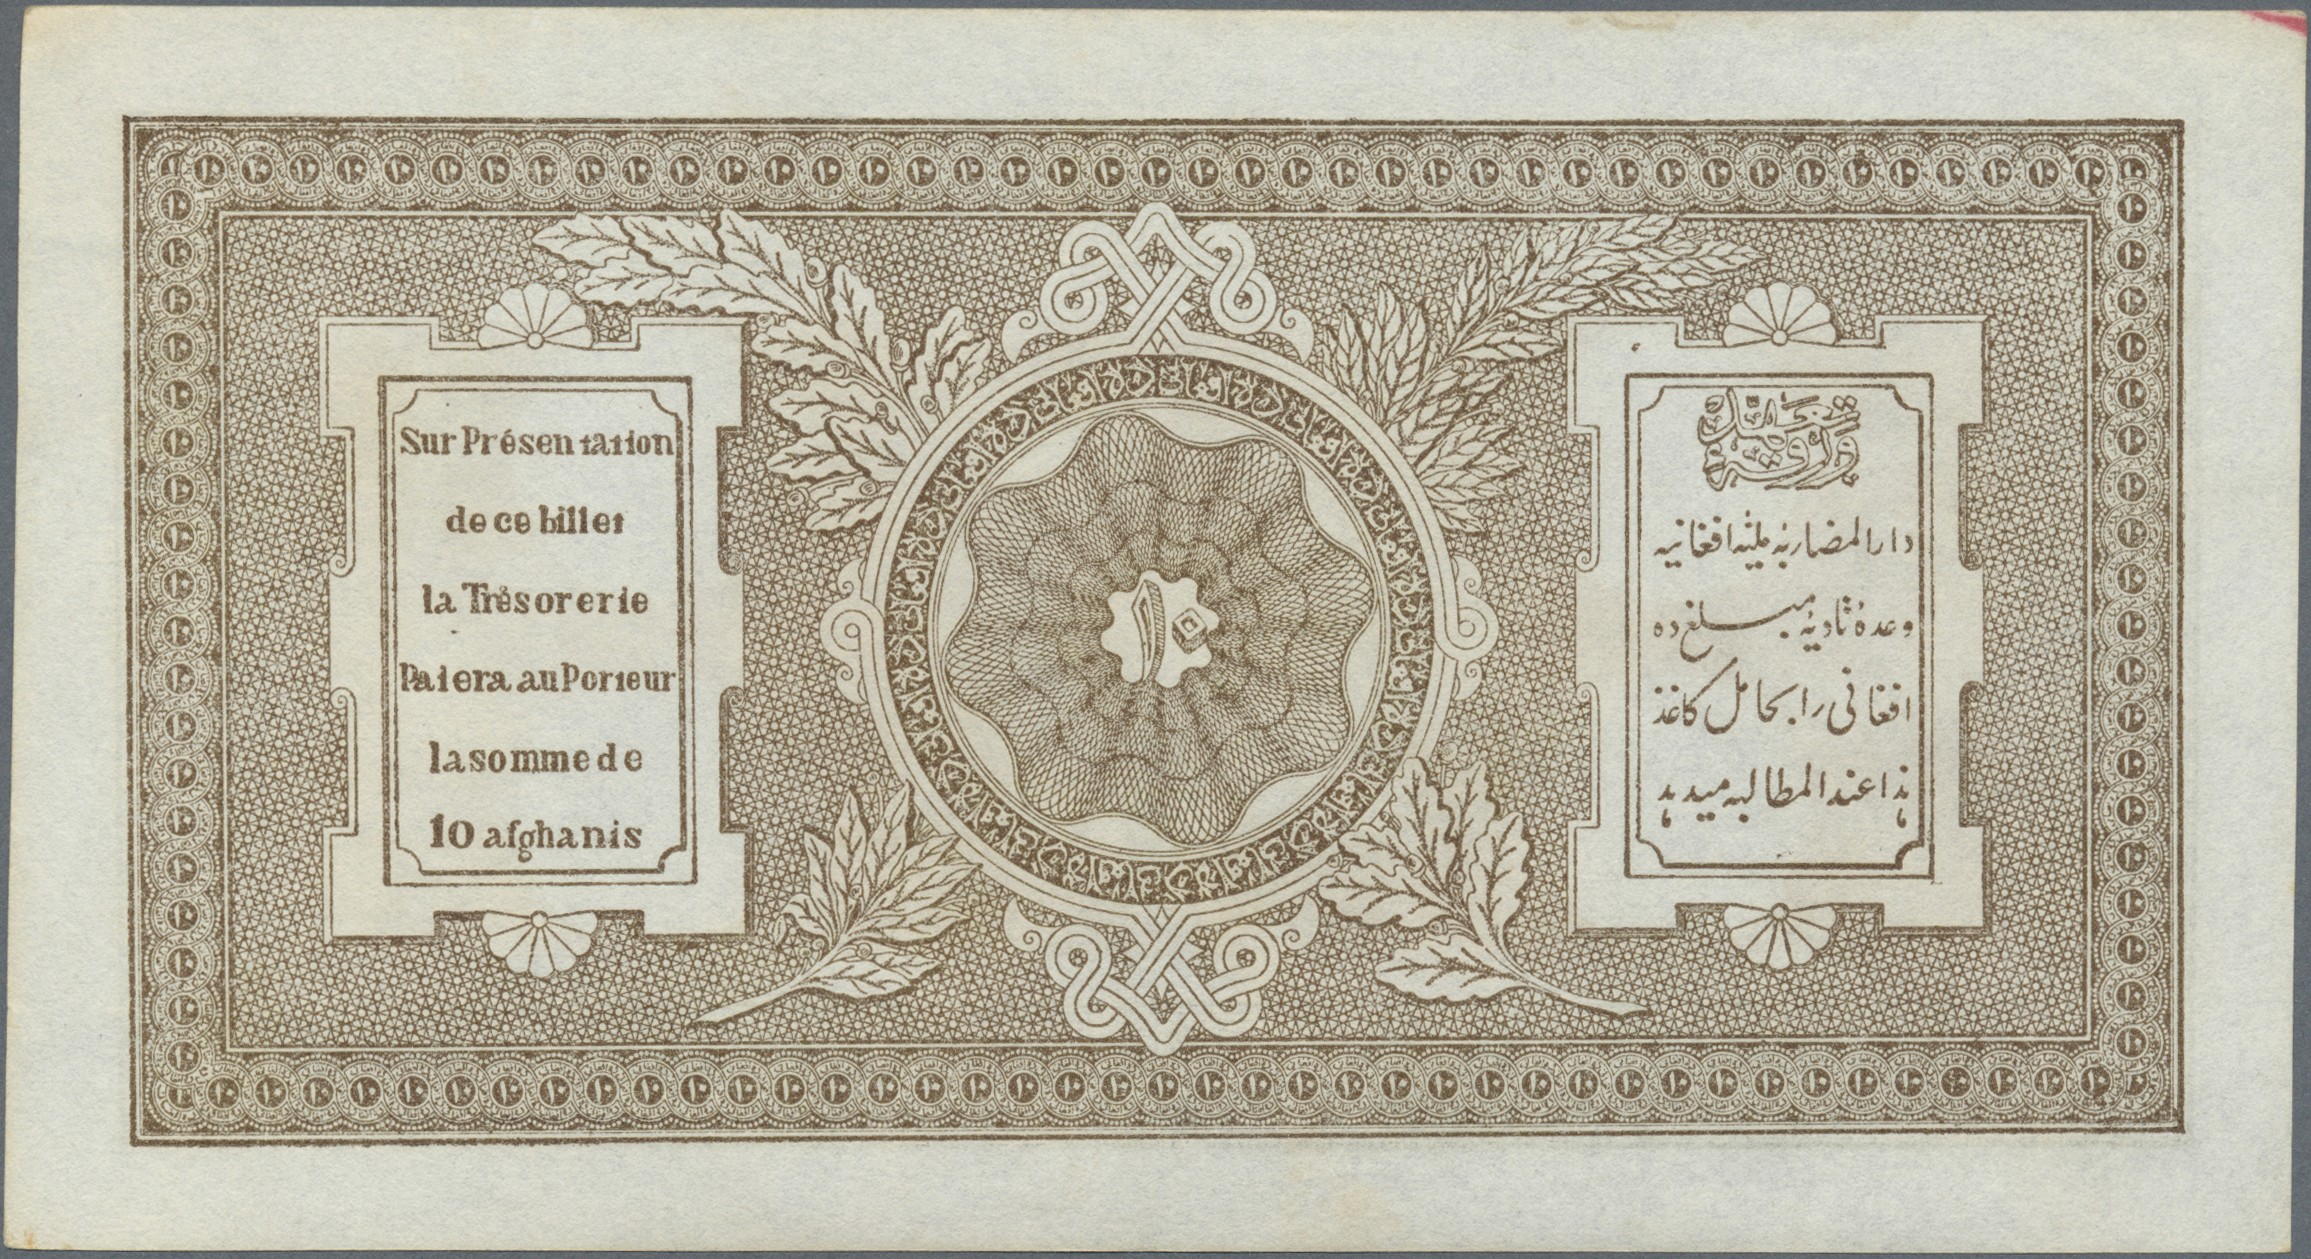 Lot 4 - Afghanistan | Banknoten  -  Auktionshaus Christoph Gärtner GmbH & Co. KG Banknotes Worldwide Auction #39 Day 1